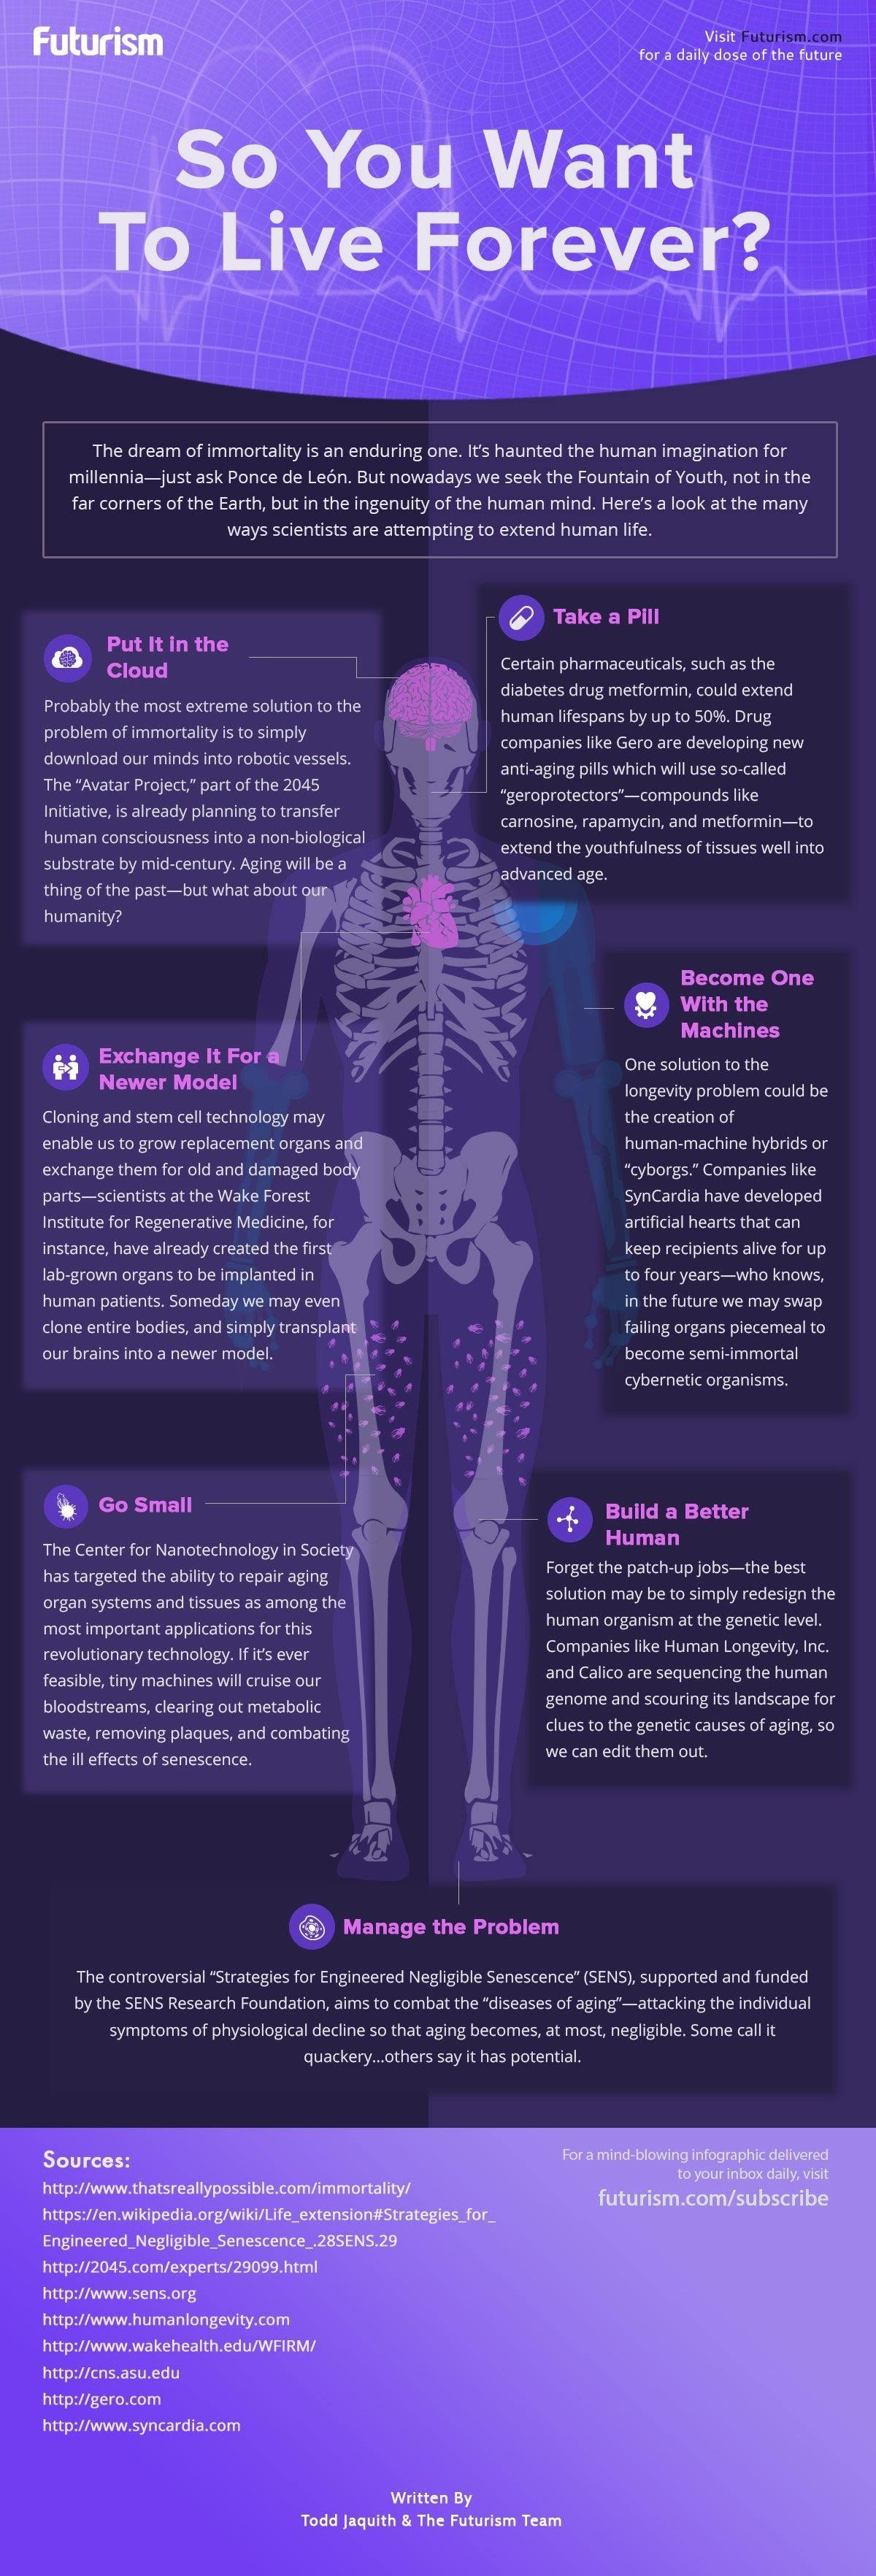 So you always want to live #infographic